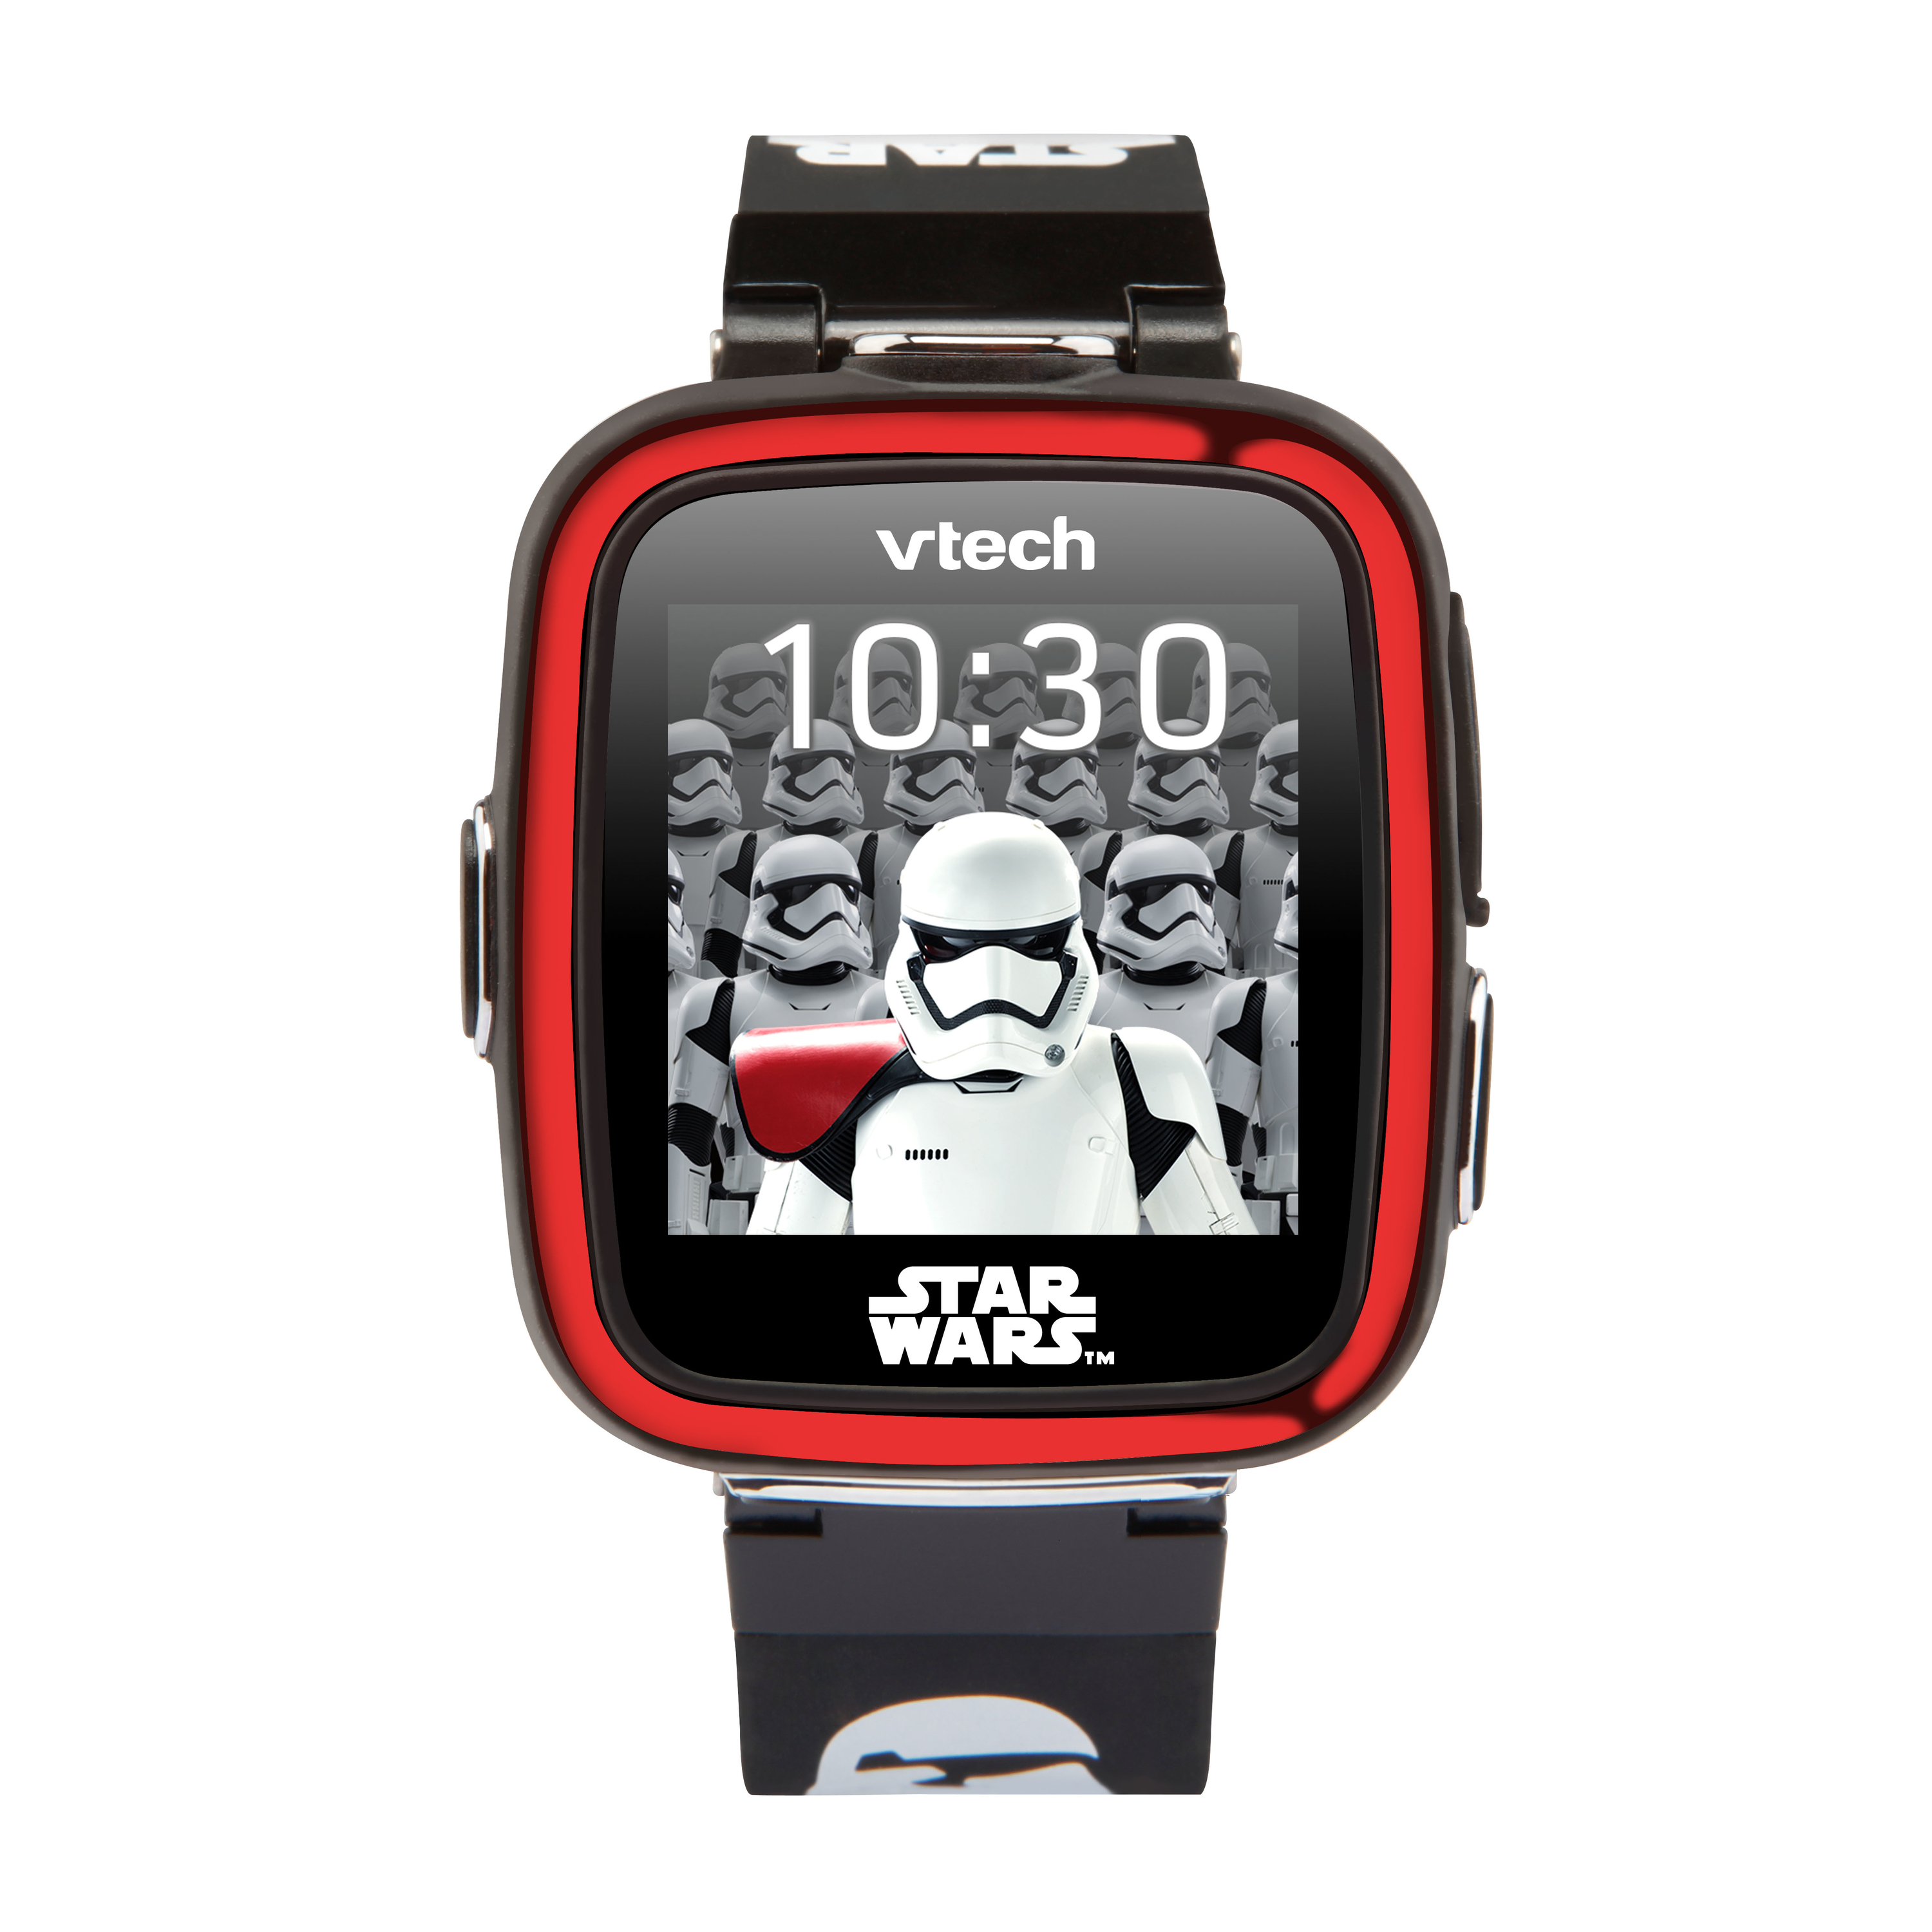 VTech First Order Stormtrooper™ Smartwatch (Black)